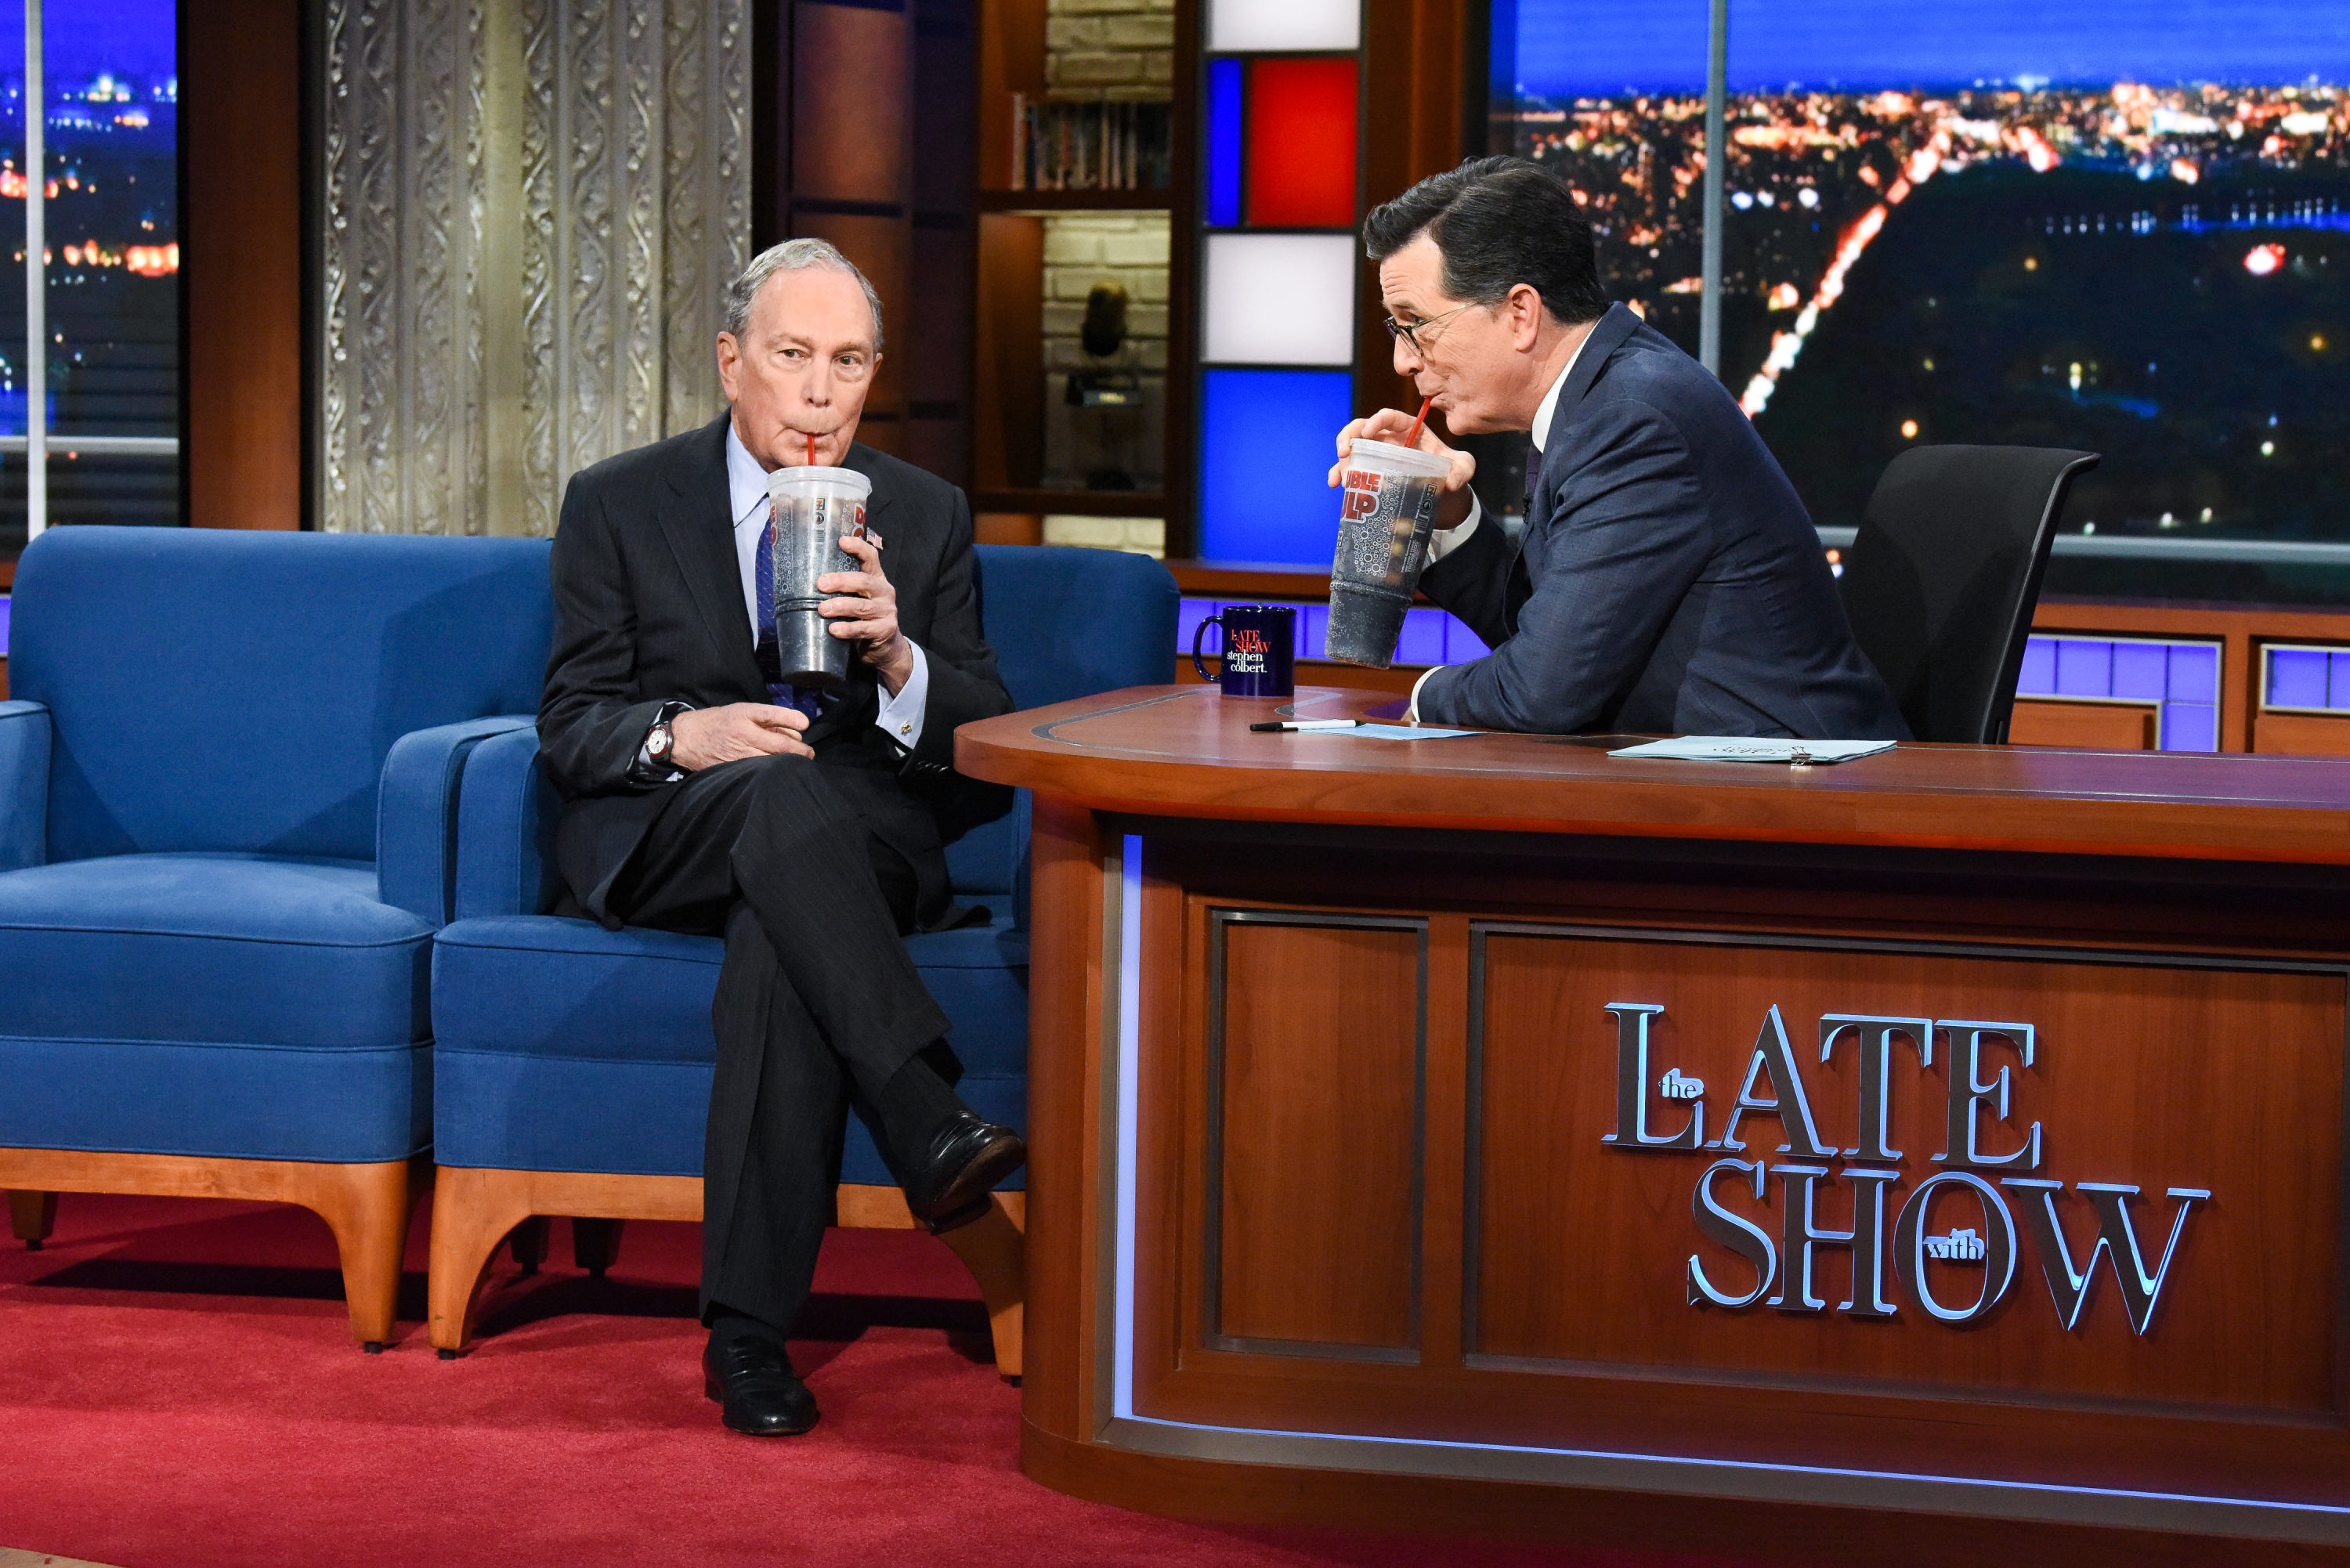 Michael Bloomberg and Stephen Colbert sip on giant sodas.